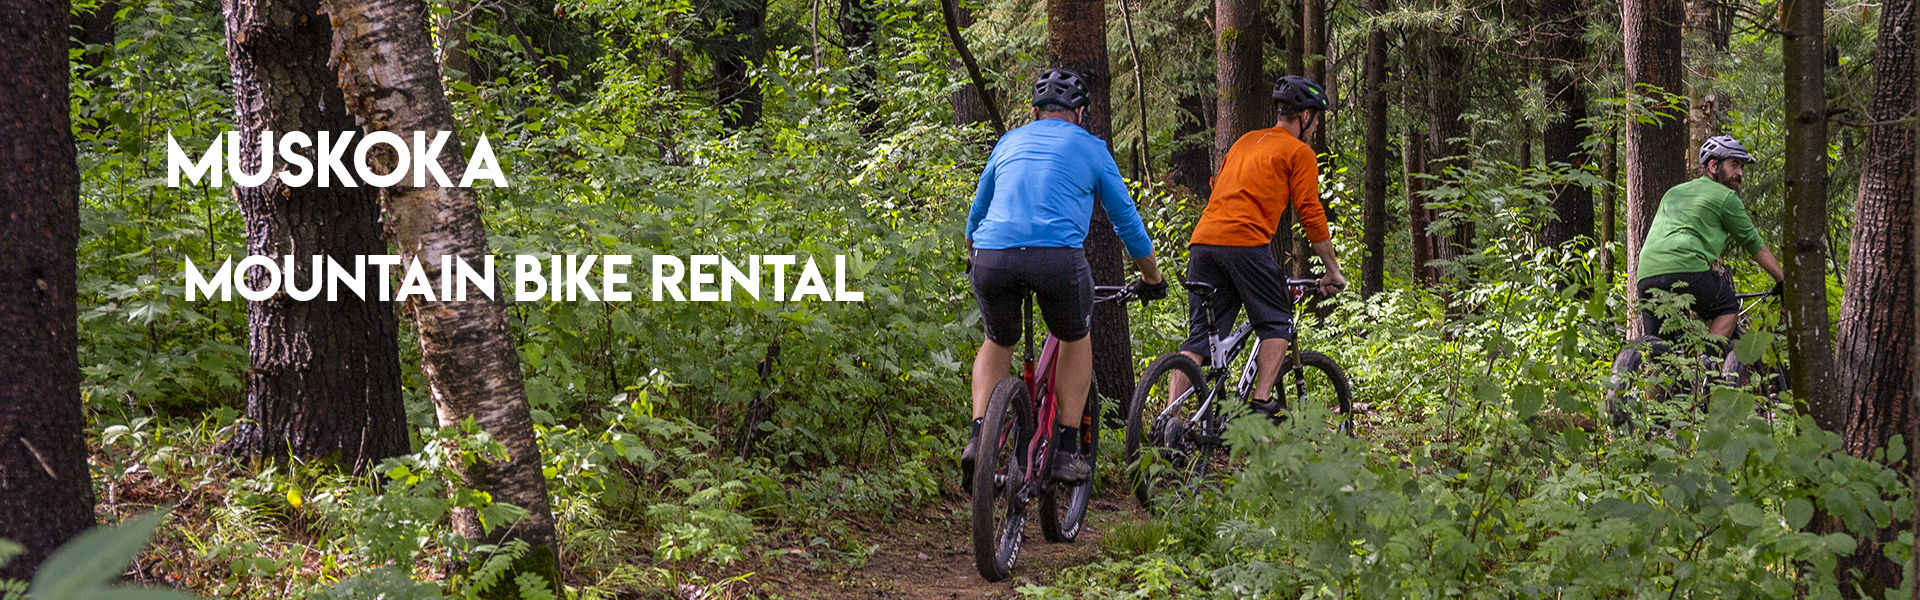 Muskoka Mountain Bike Rental